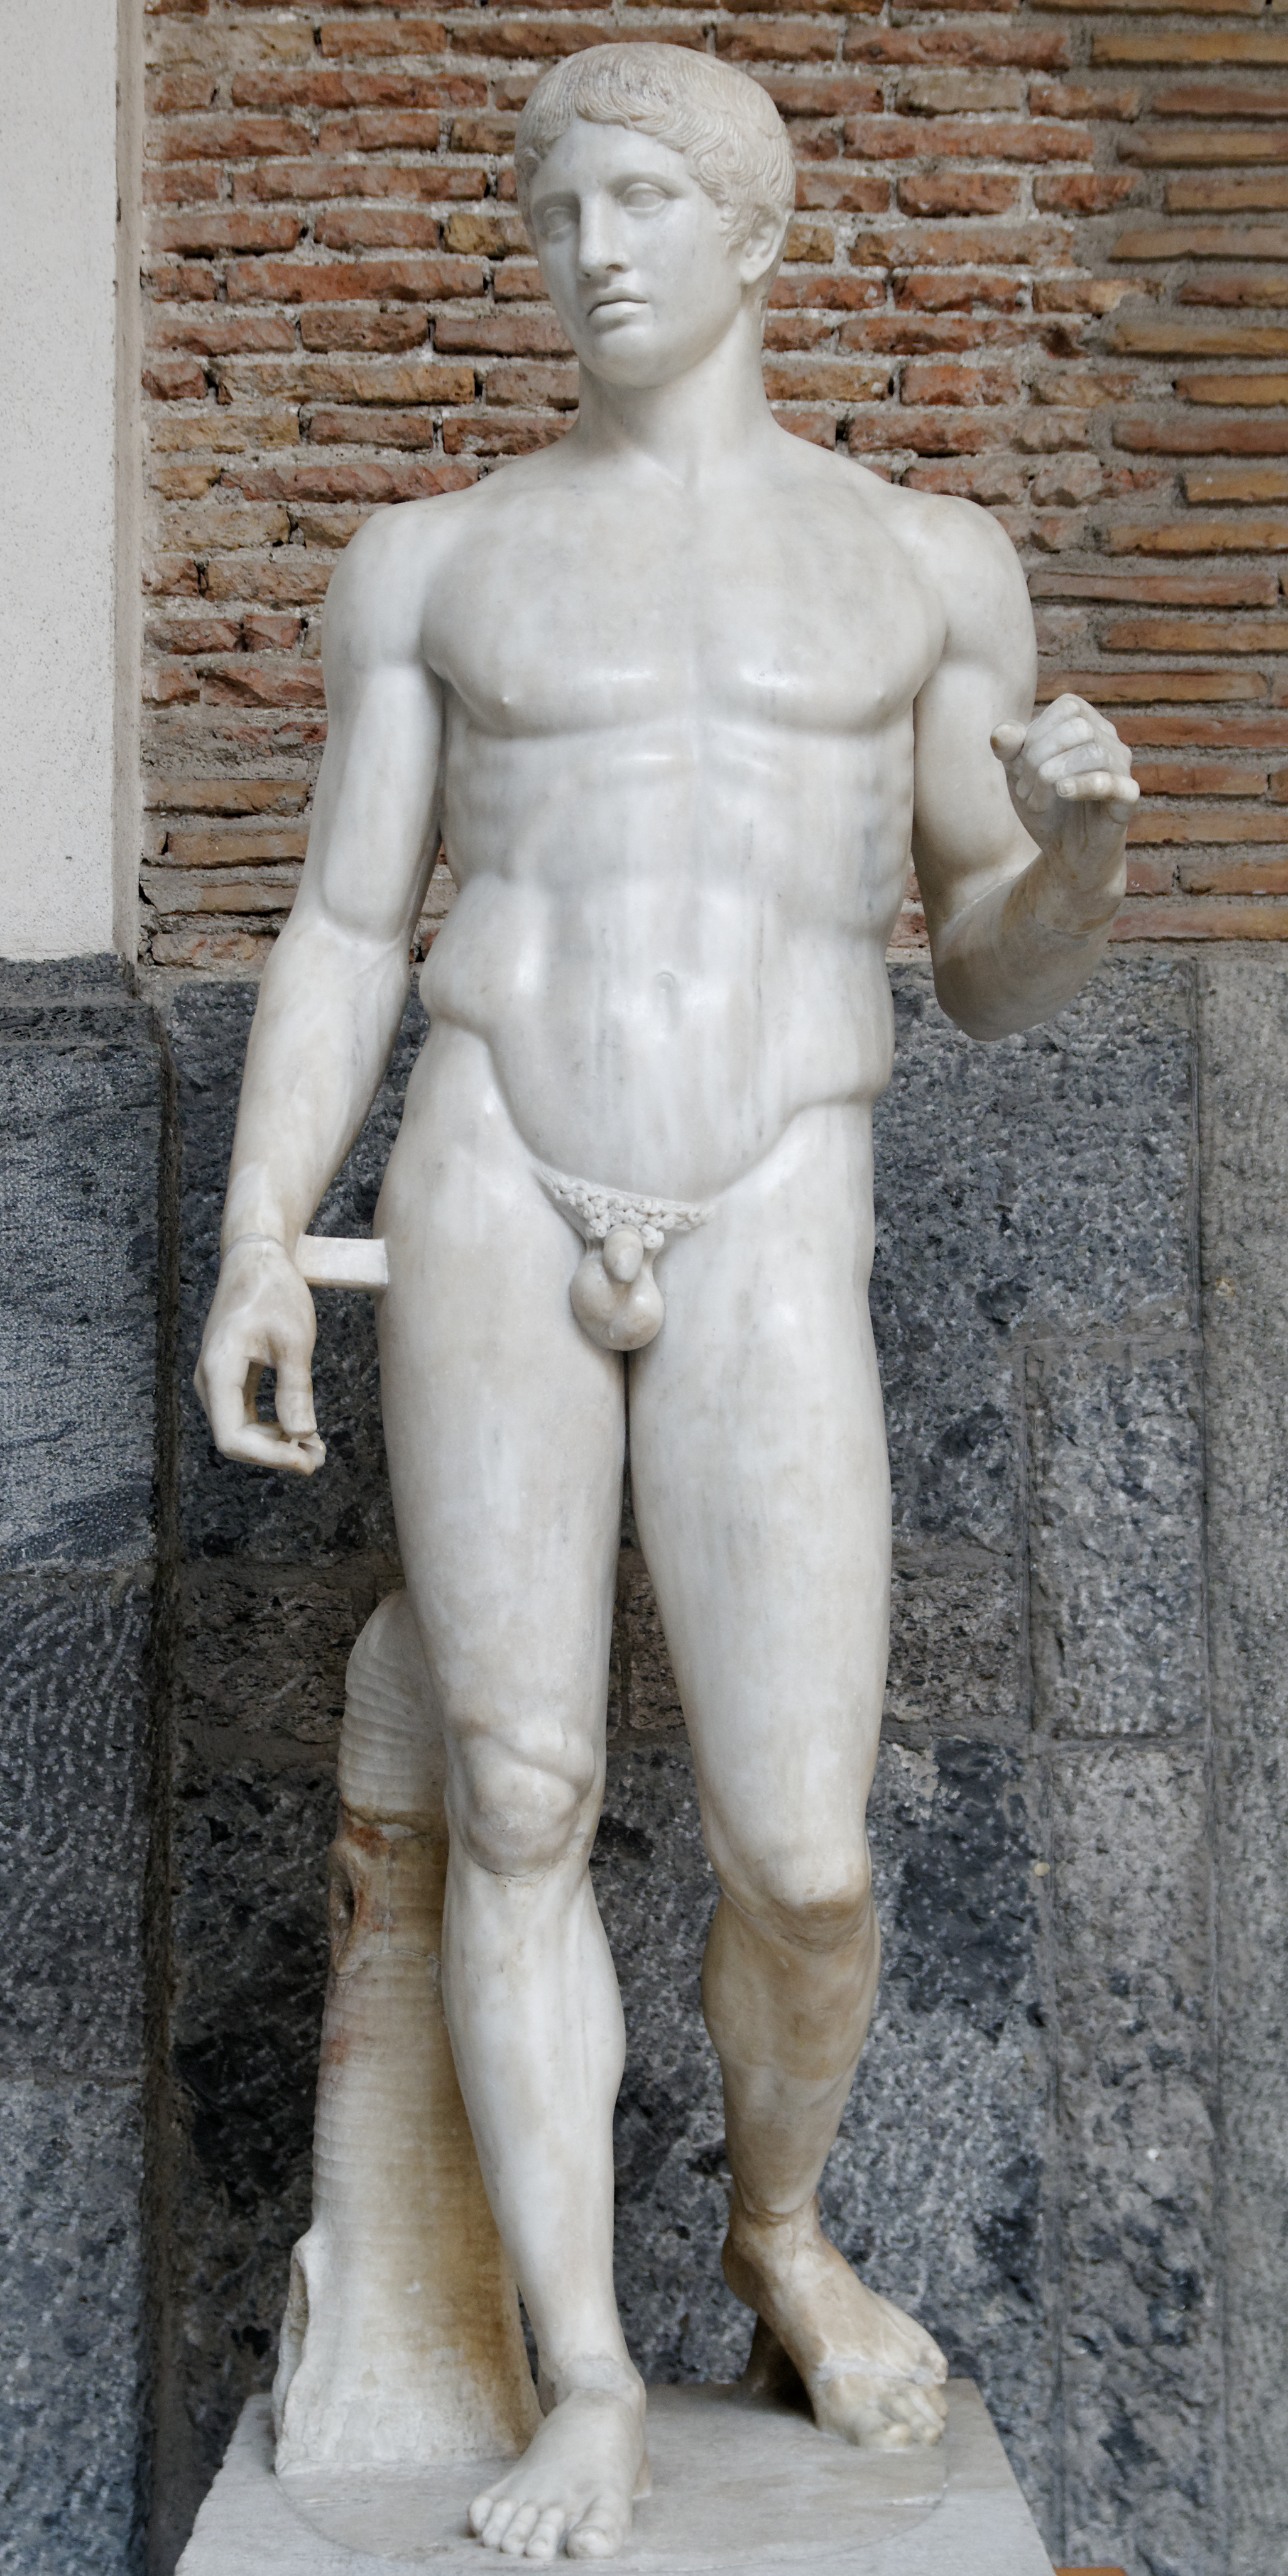 """Doryphoros, Roman copy after an original by Polykleitos from c. 450-440 BCE, 6'6"""" high, Museo Archeologico Nazionale, Naples, Public Domain via Wikimedia Commons."""